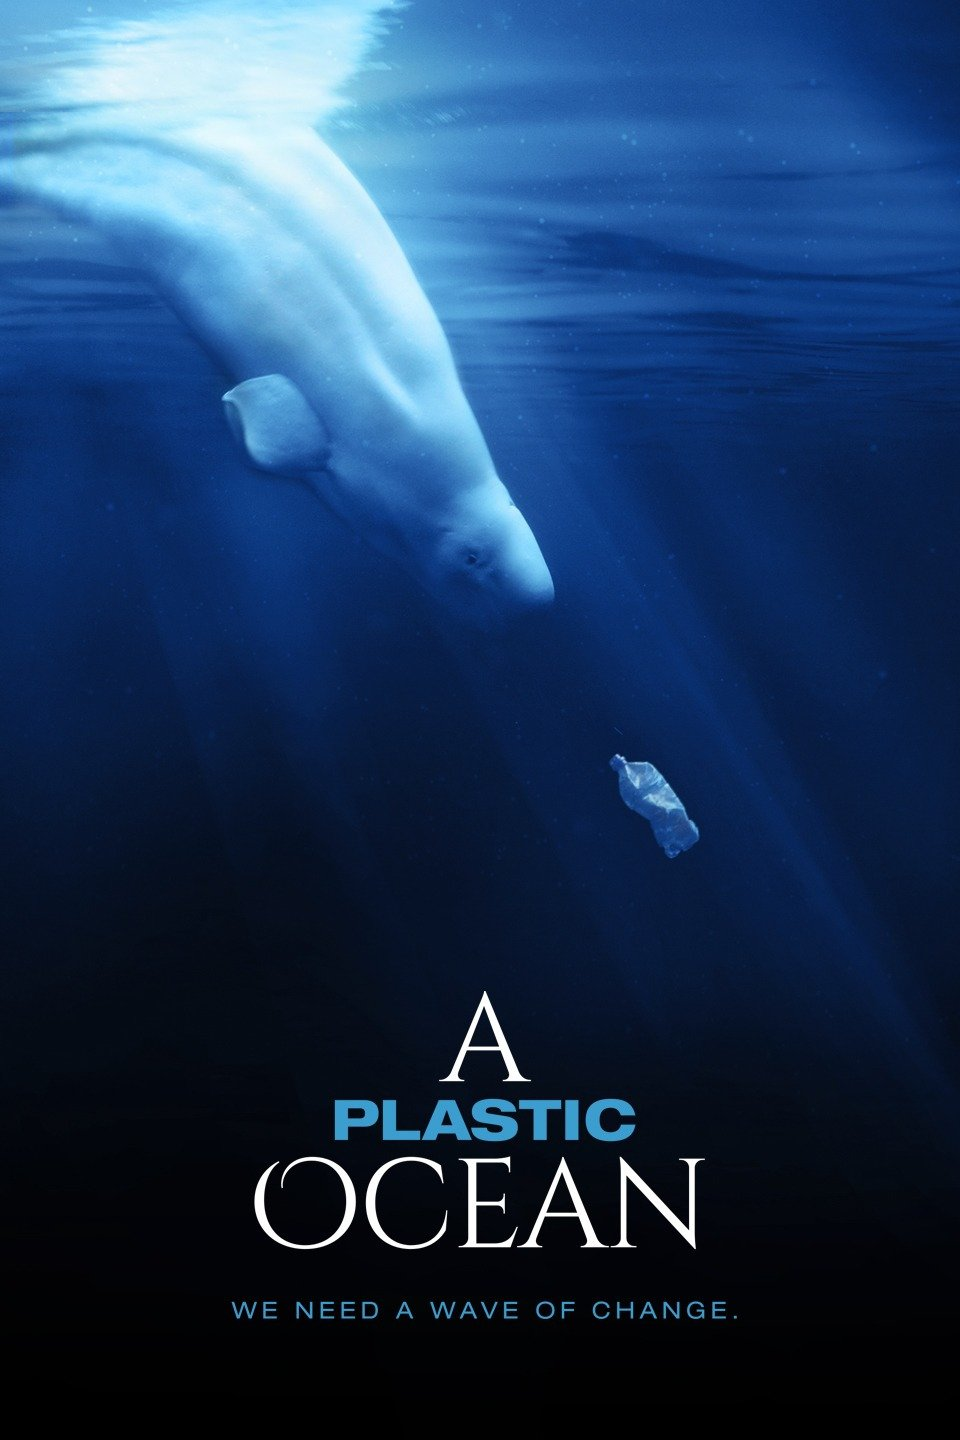 Watch the amazing film,  A Plastic Ocean